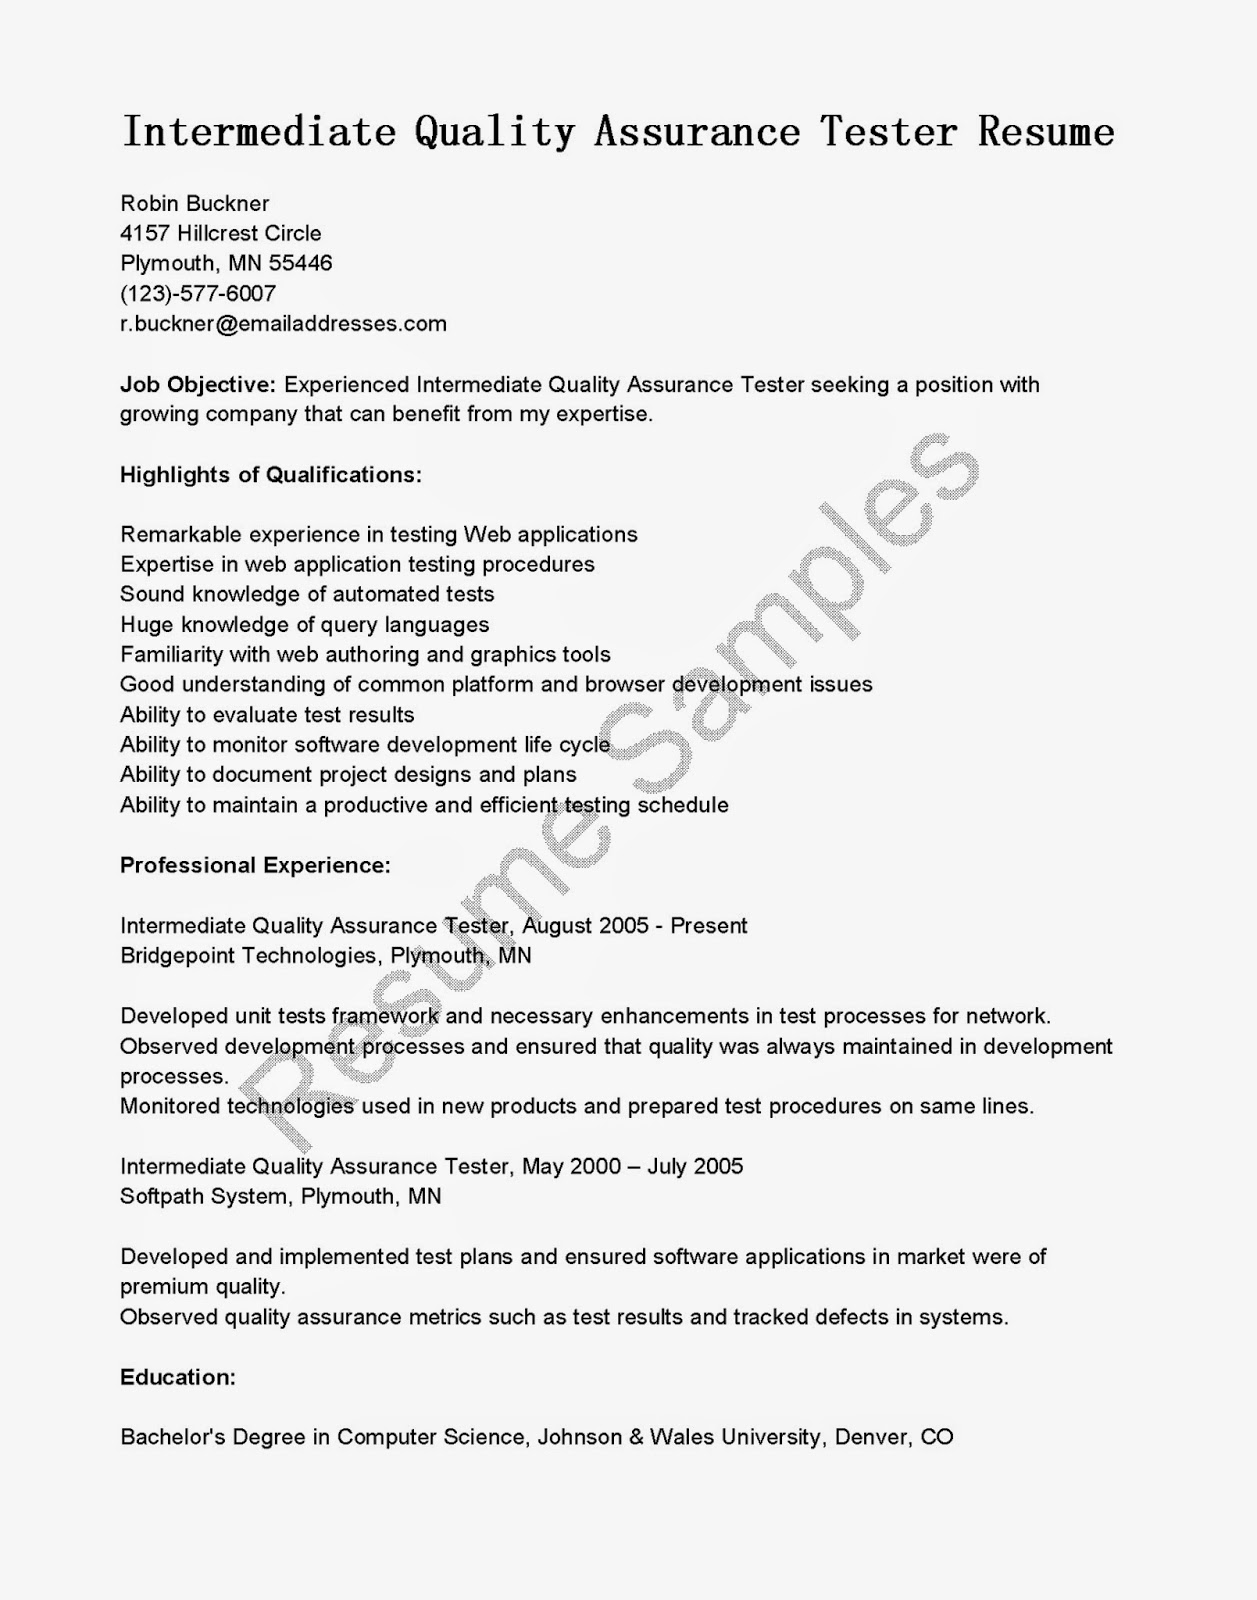 free resume templates experienced mobile testing frudgereport free resume templates experienced mobile testing frudgereport